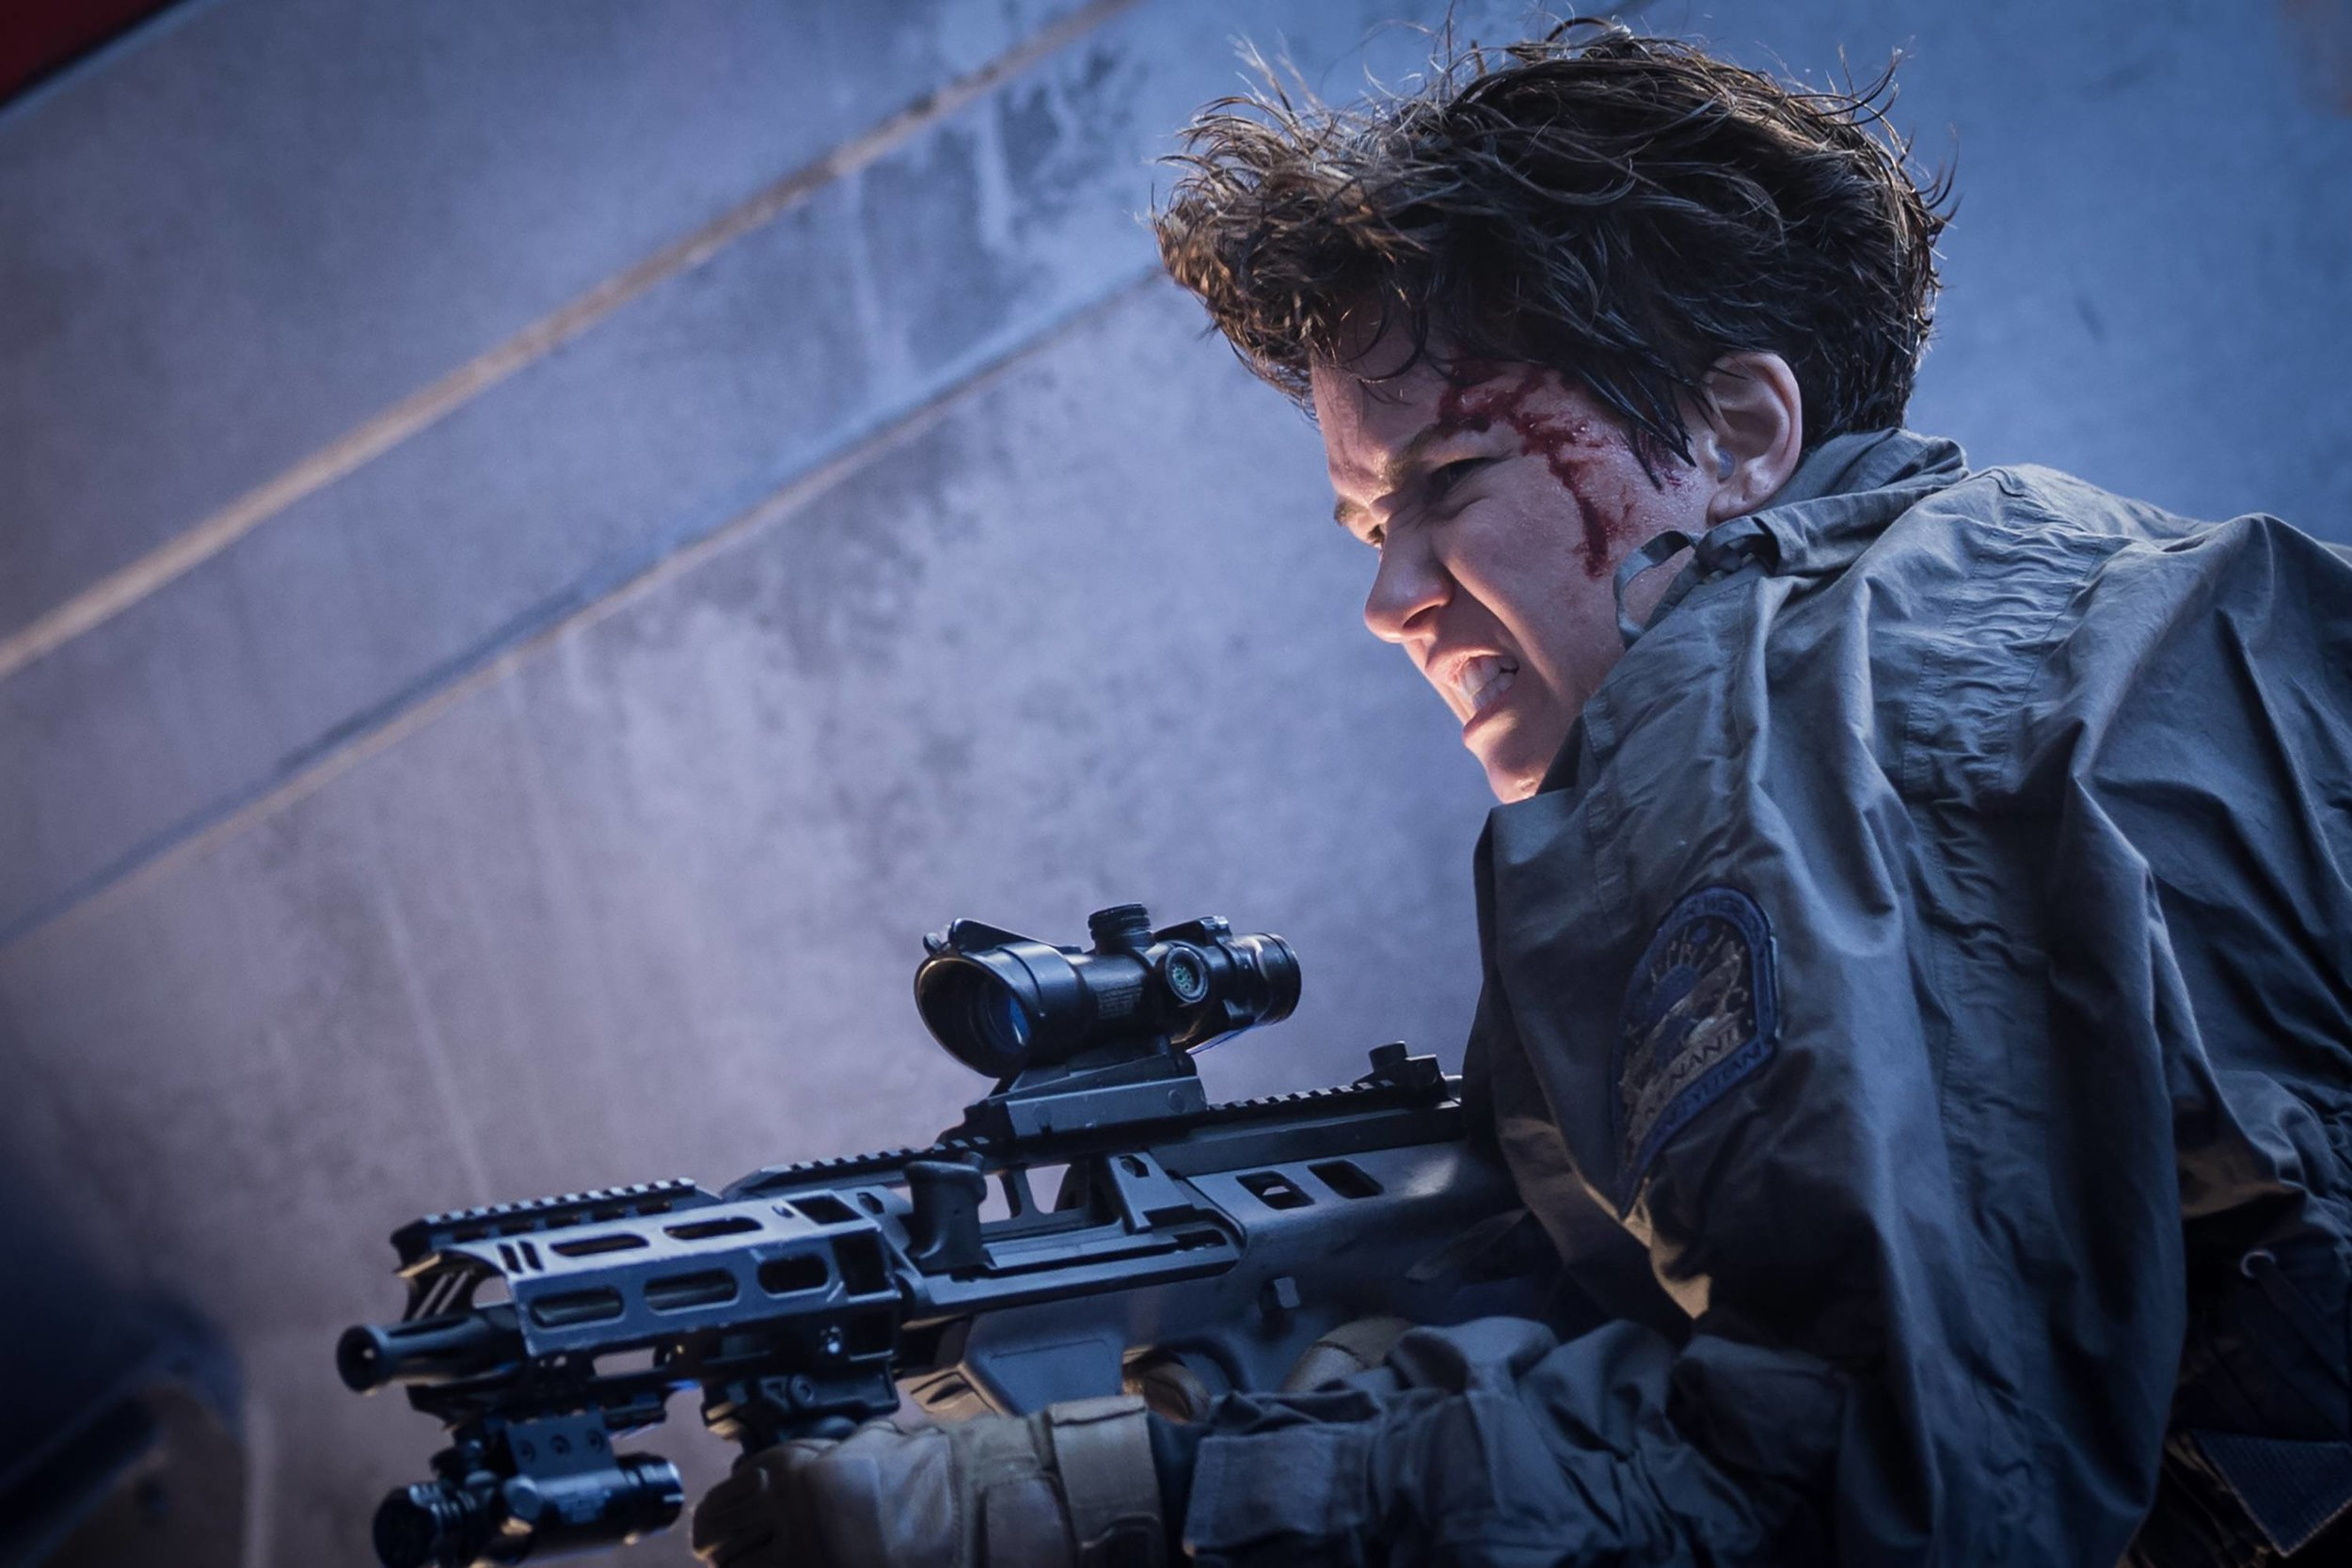 Katherine Waterston takes on nasty intergalactic creatures in 'Alien: Covenant.' (Photo: Mark Rogers)